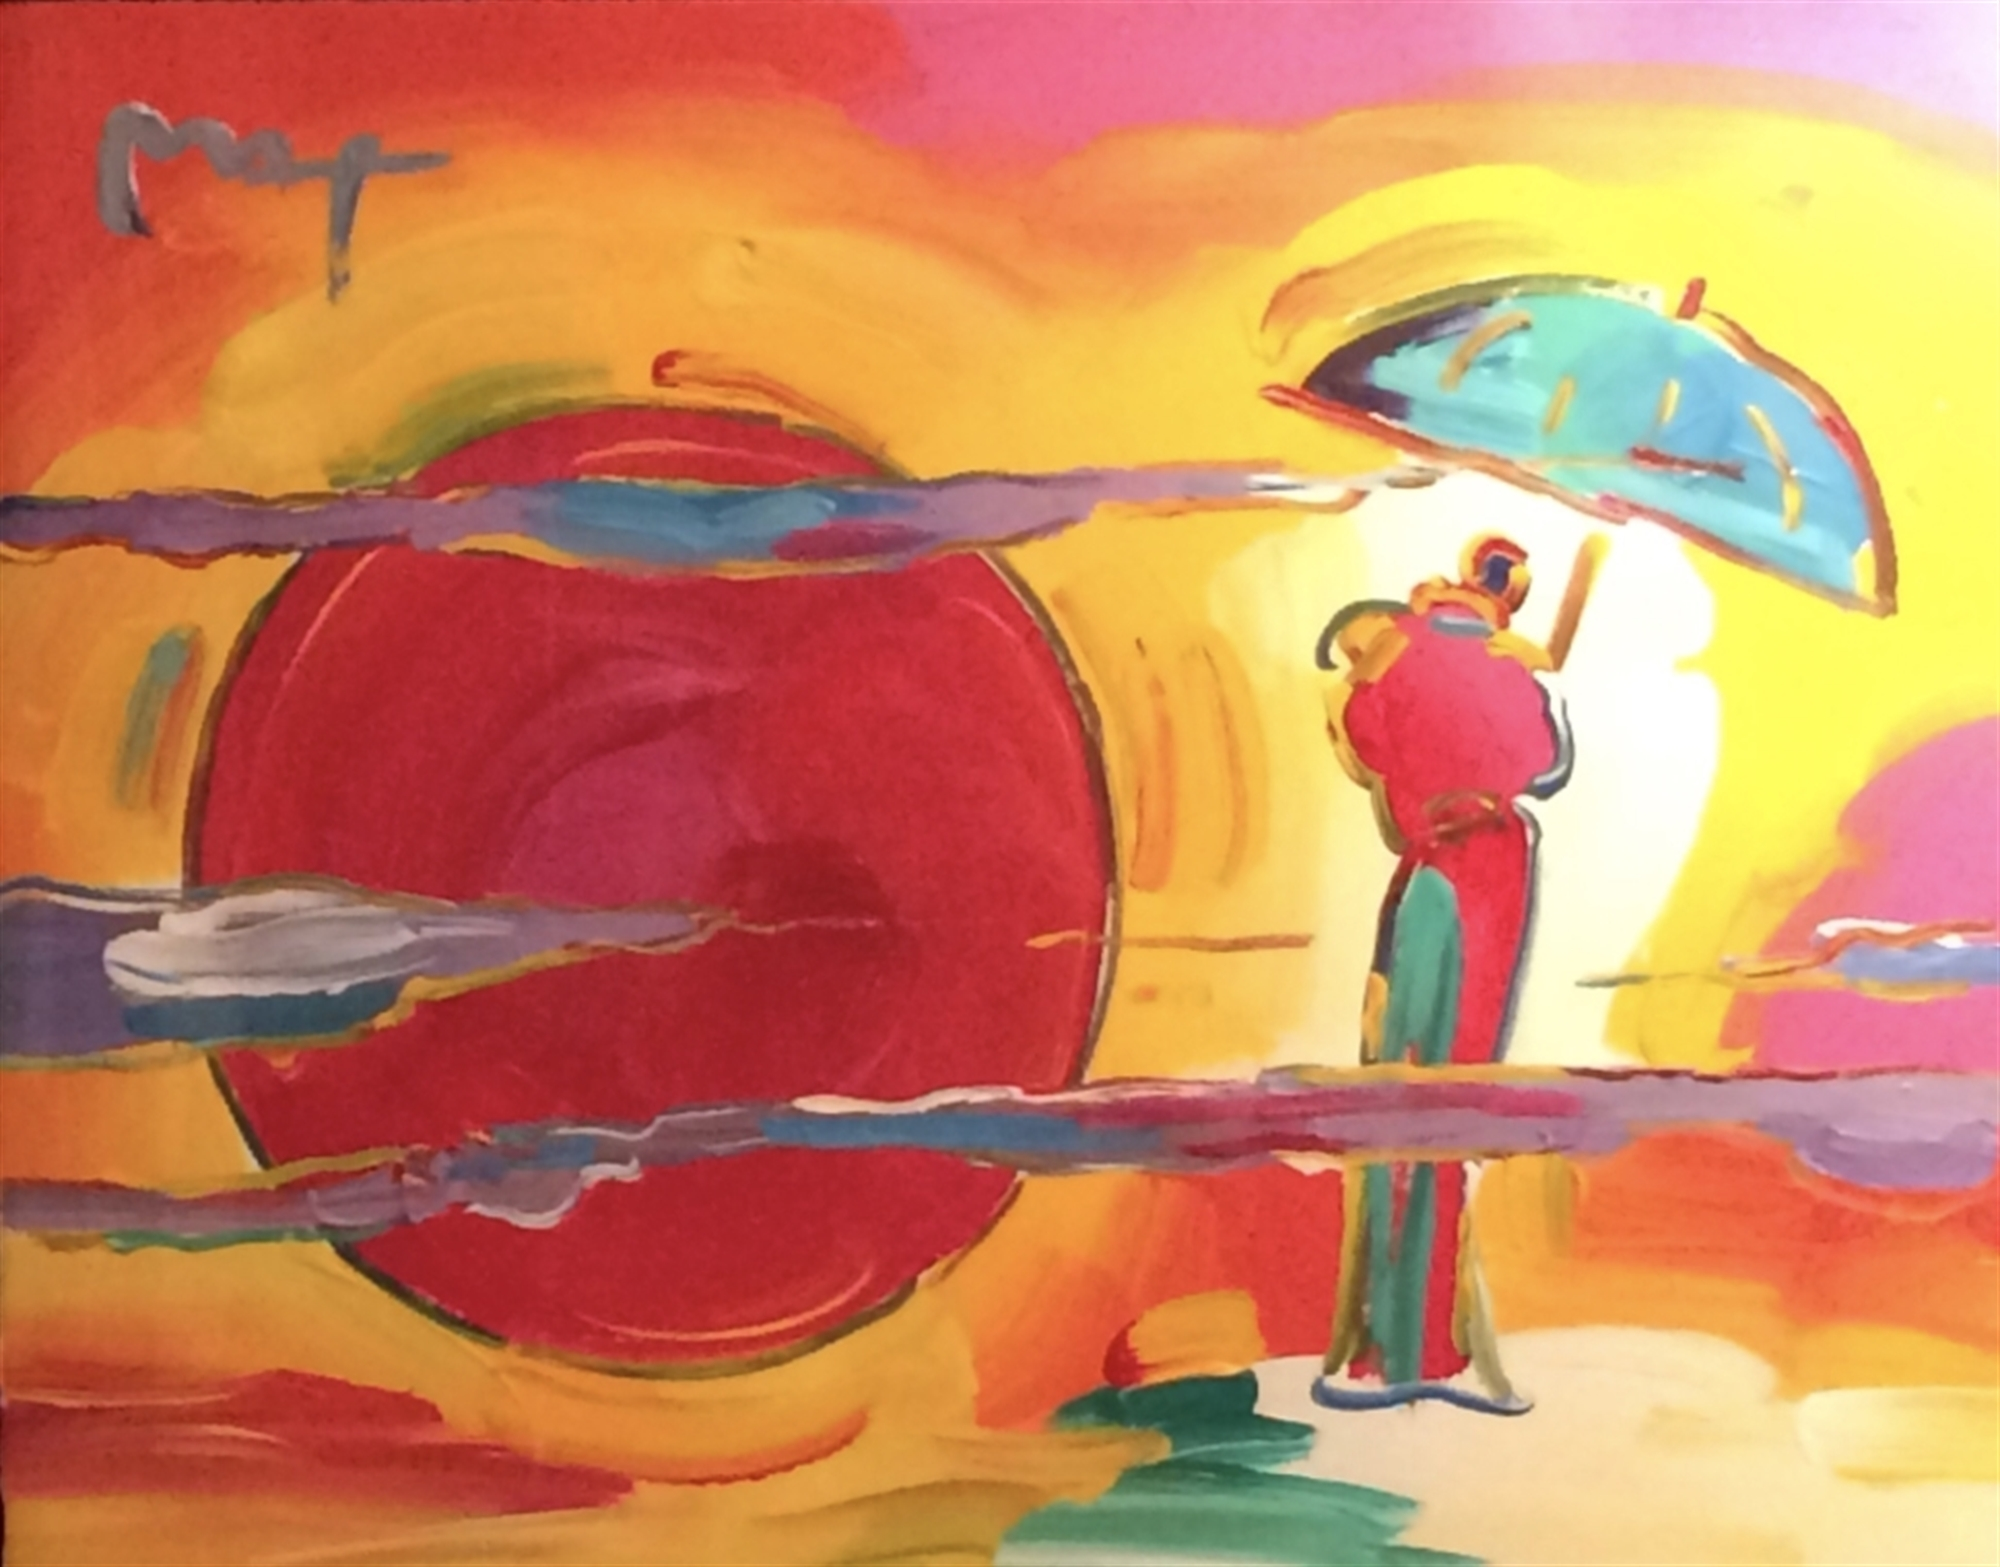 New Moon by Peter Max